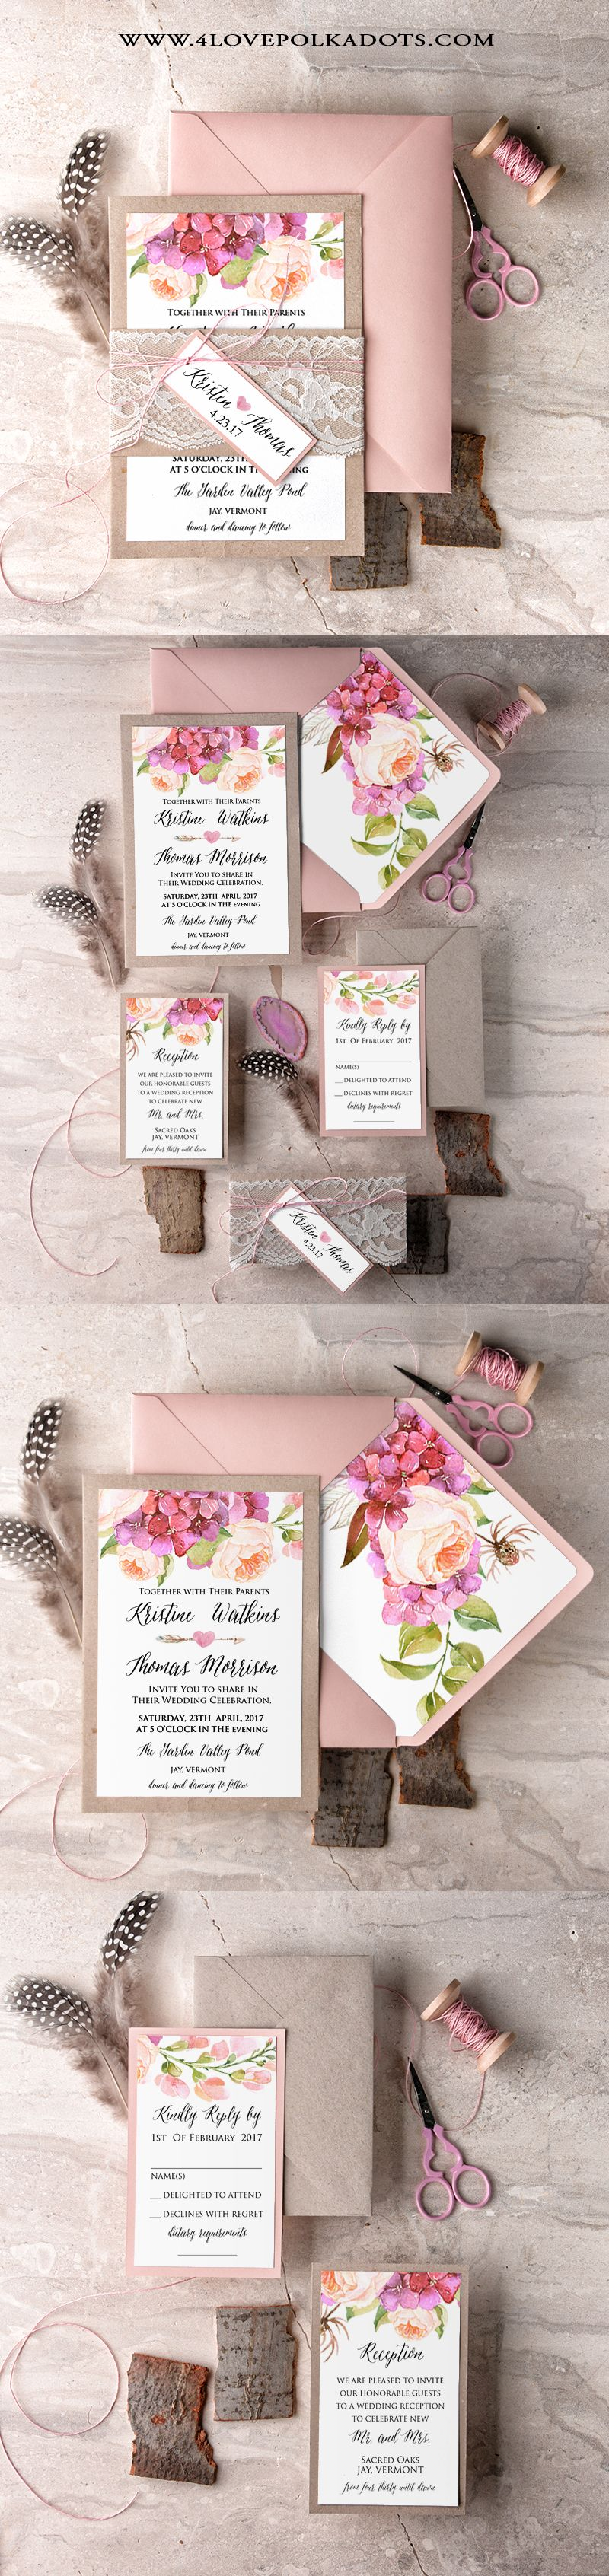 elegant wedding invites coupon codes%0A Floral Invitations  Lace Wedding Invitation  Boho Wedding Invitations  Elegant  Wedding Invitations  Watercolour Wedding Invites  Boho   Lace weddings